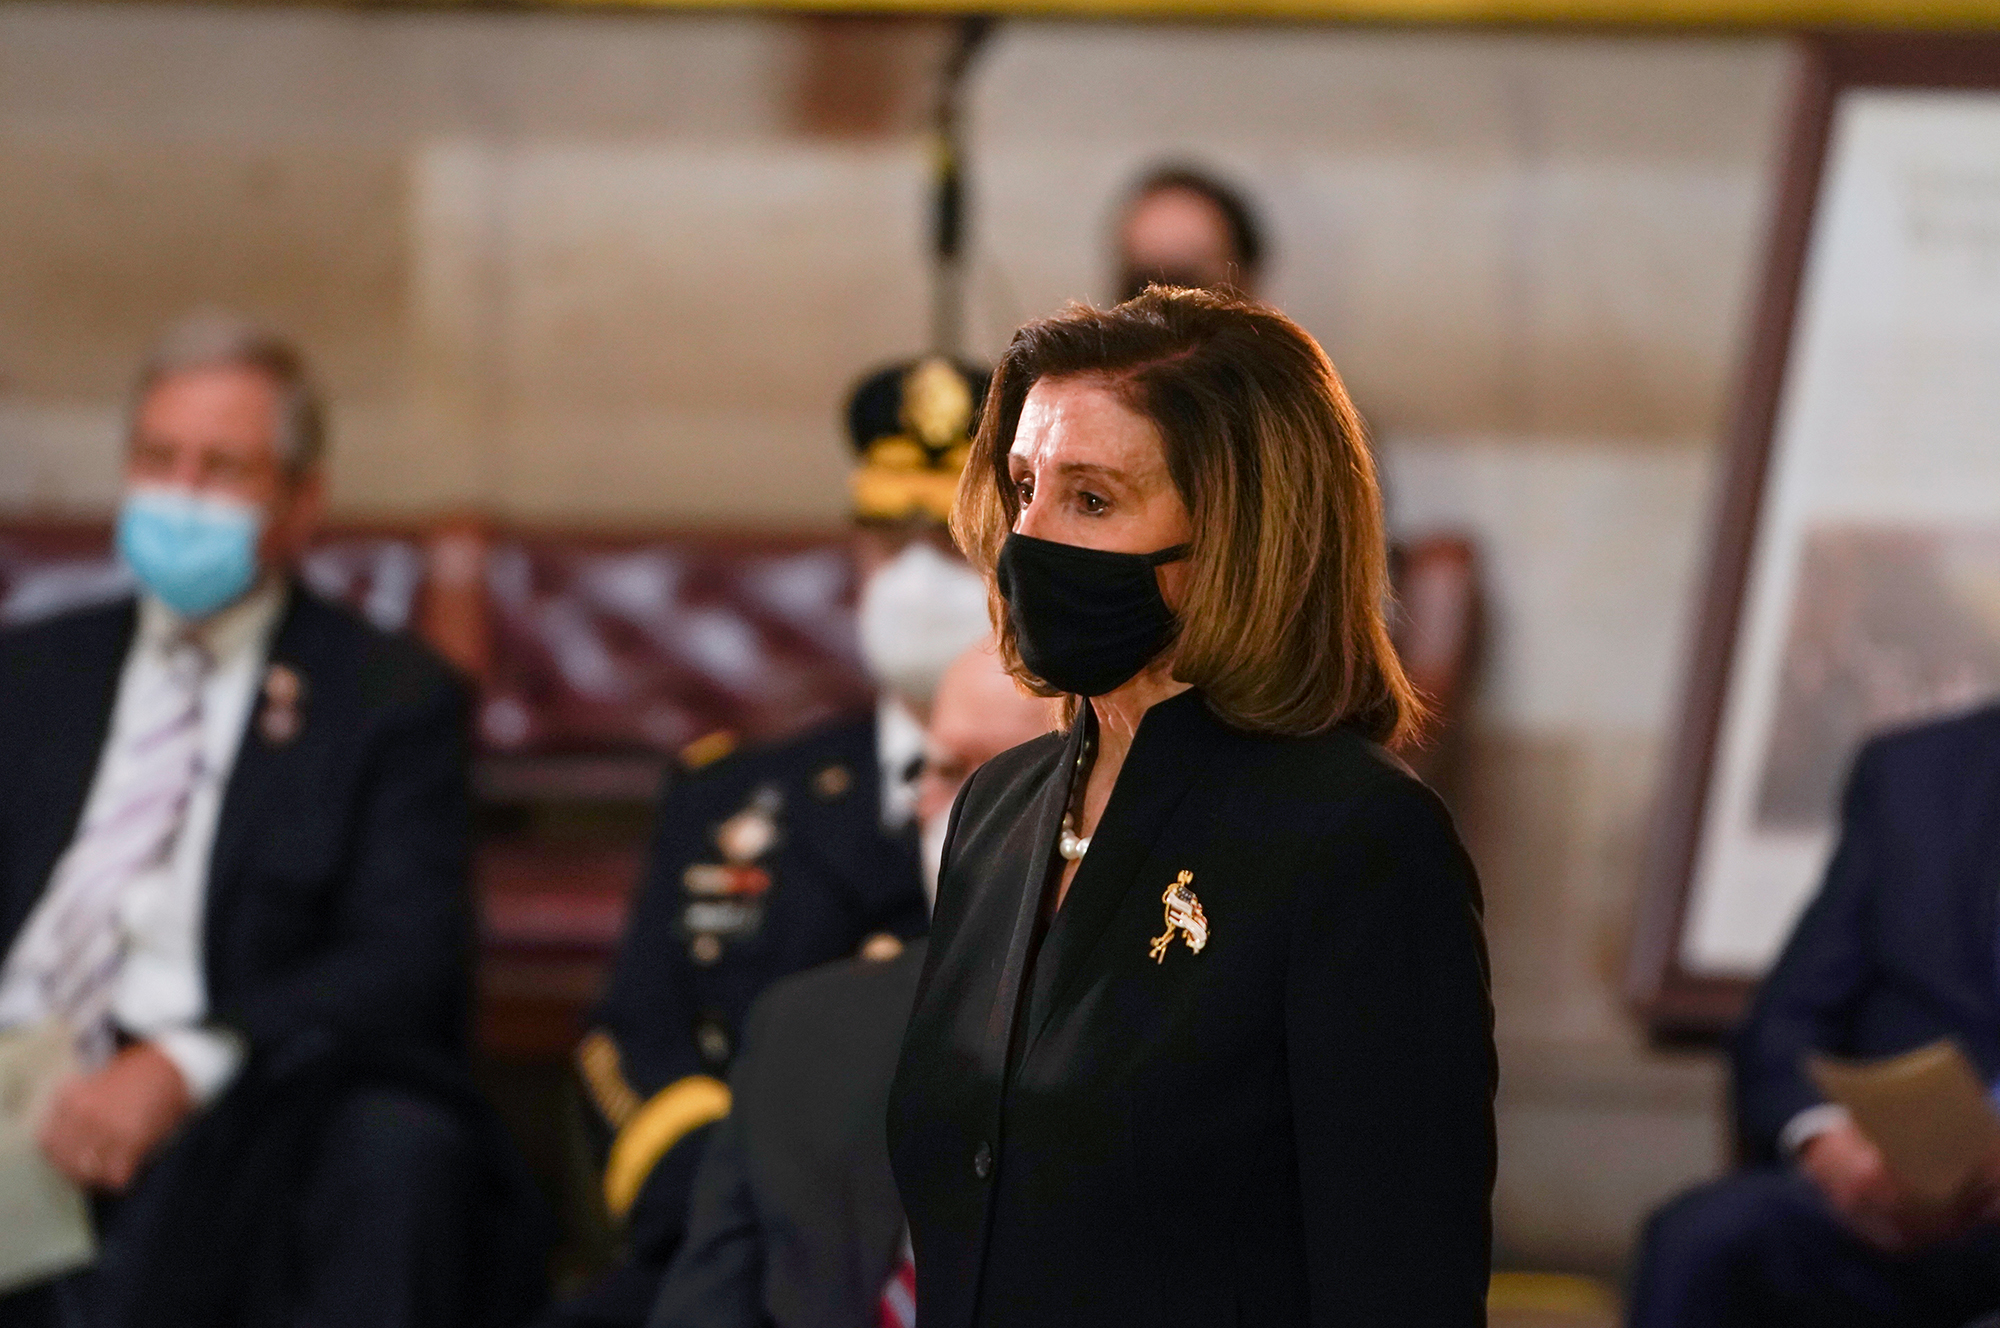 House Speaker Nancy Pelosi of Calif., arrives for a ceremony memorializing U.S. Capitol Police officer Brian Sicknick, as an urn with his cremated remains lies in honor on a black-draped table at the center of the Capitol Rotunda, Wednesday, Feb. 3, 2021, in Washington.